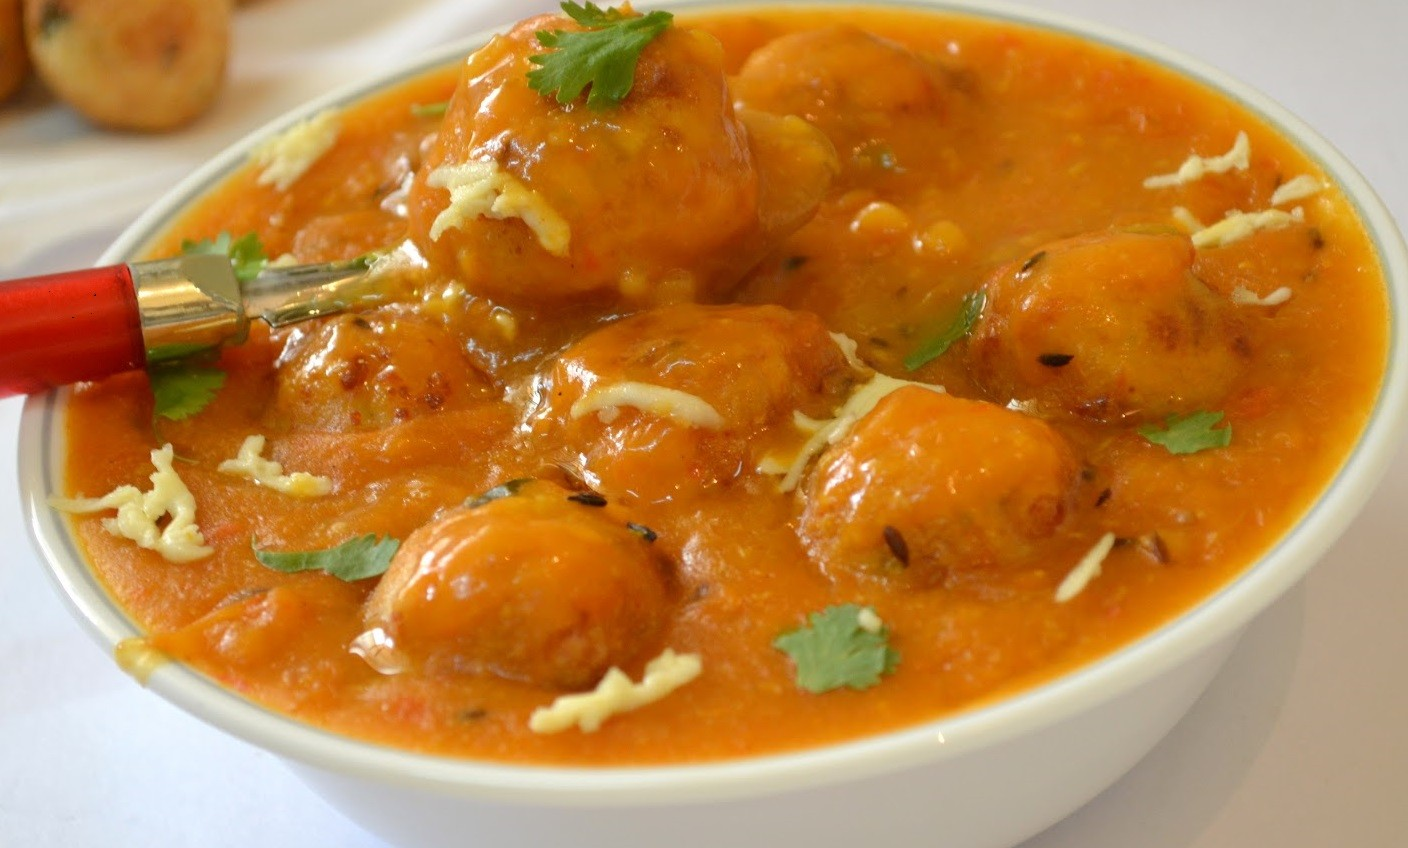 Malai kofta lakeside indian malai kofta forumfinder Choice Image